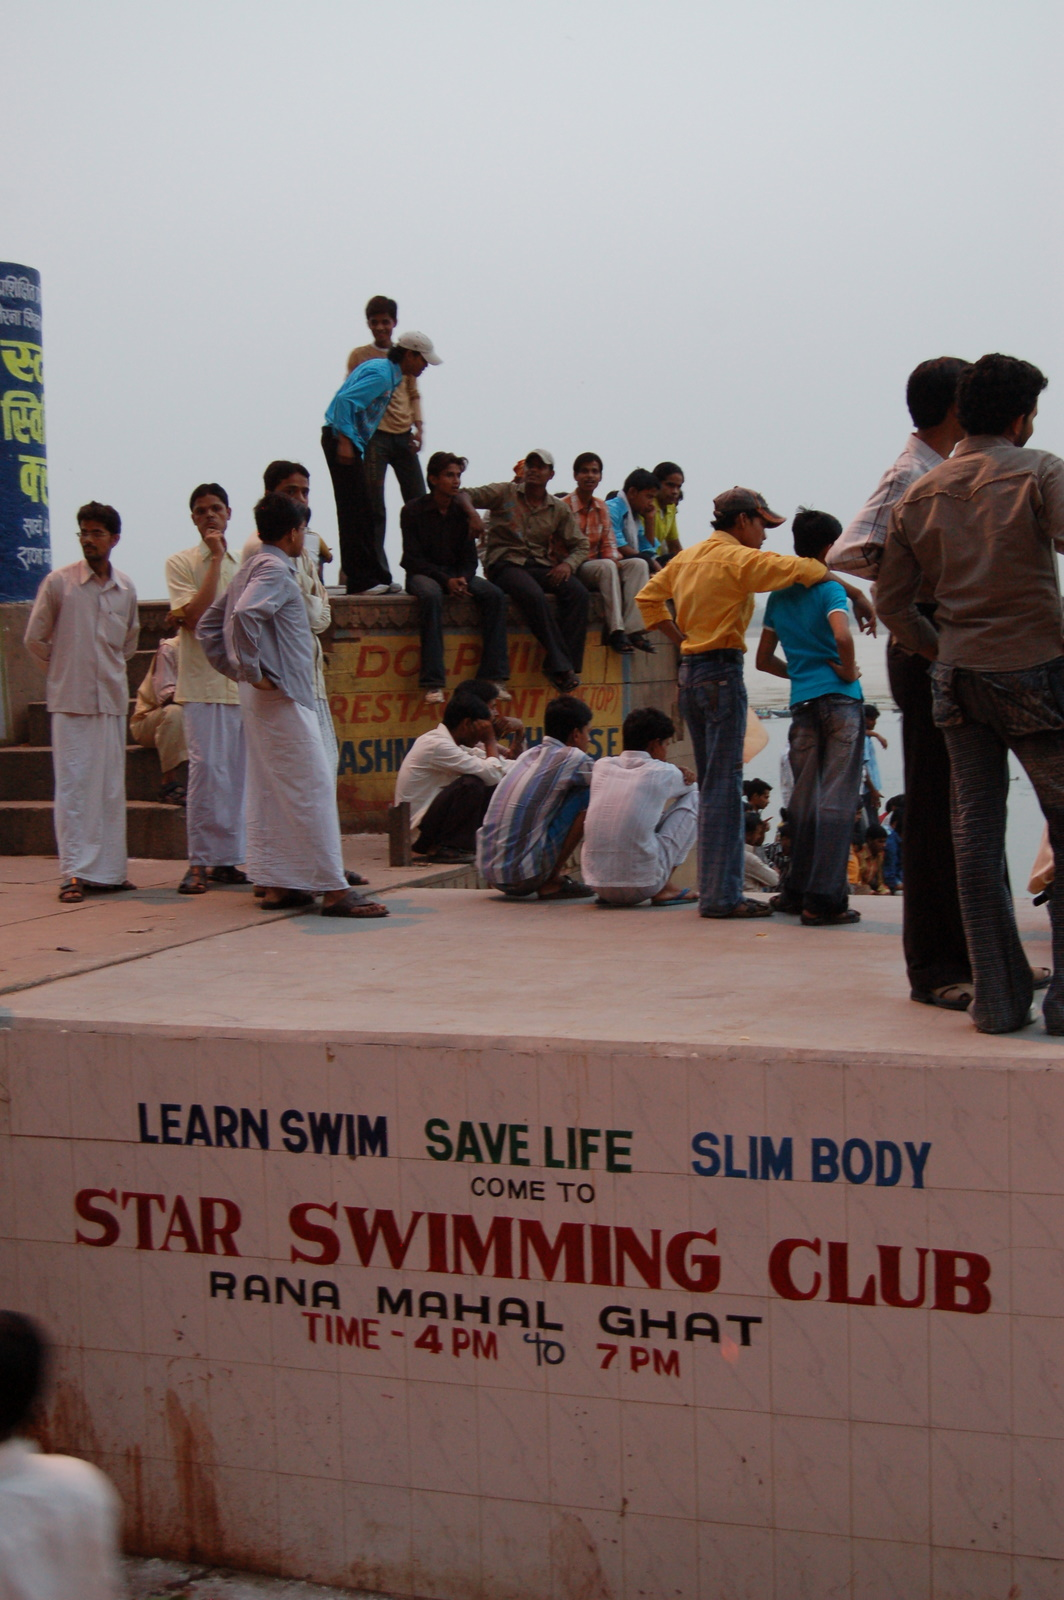 Star Swimming Club